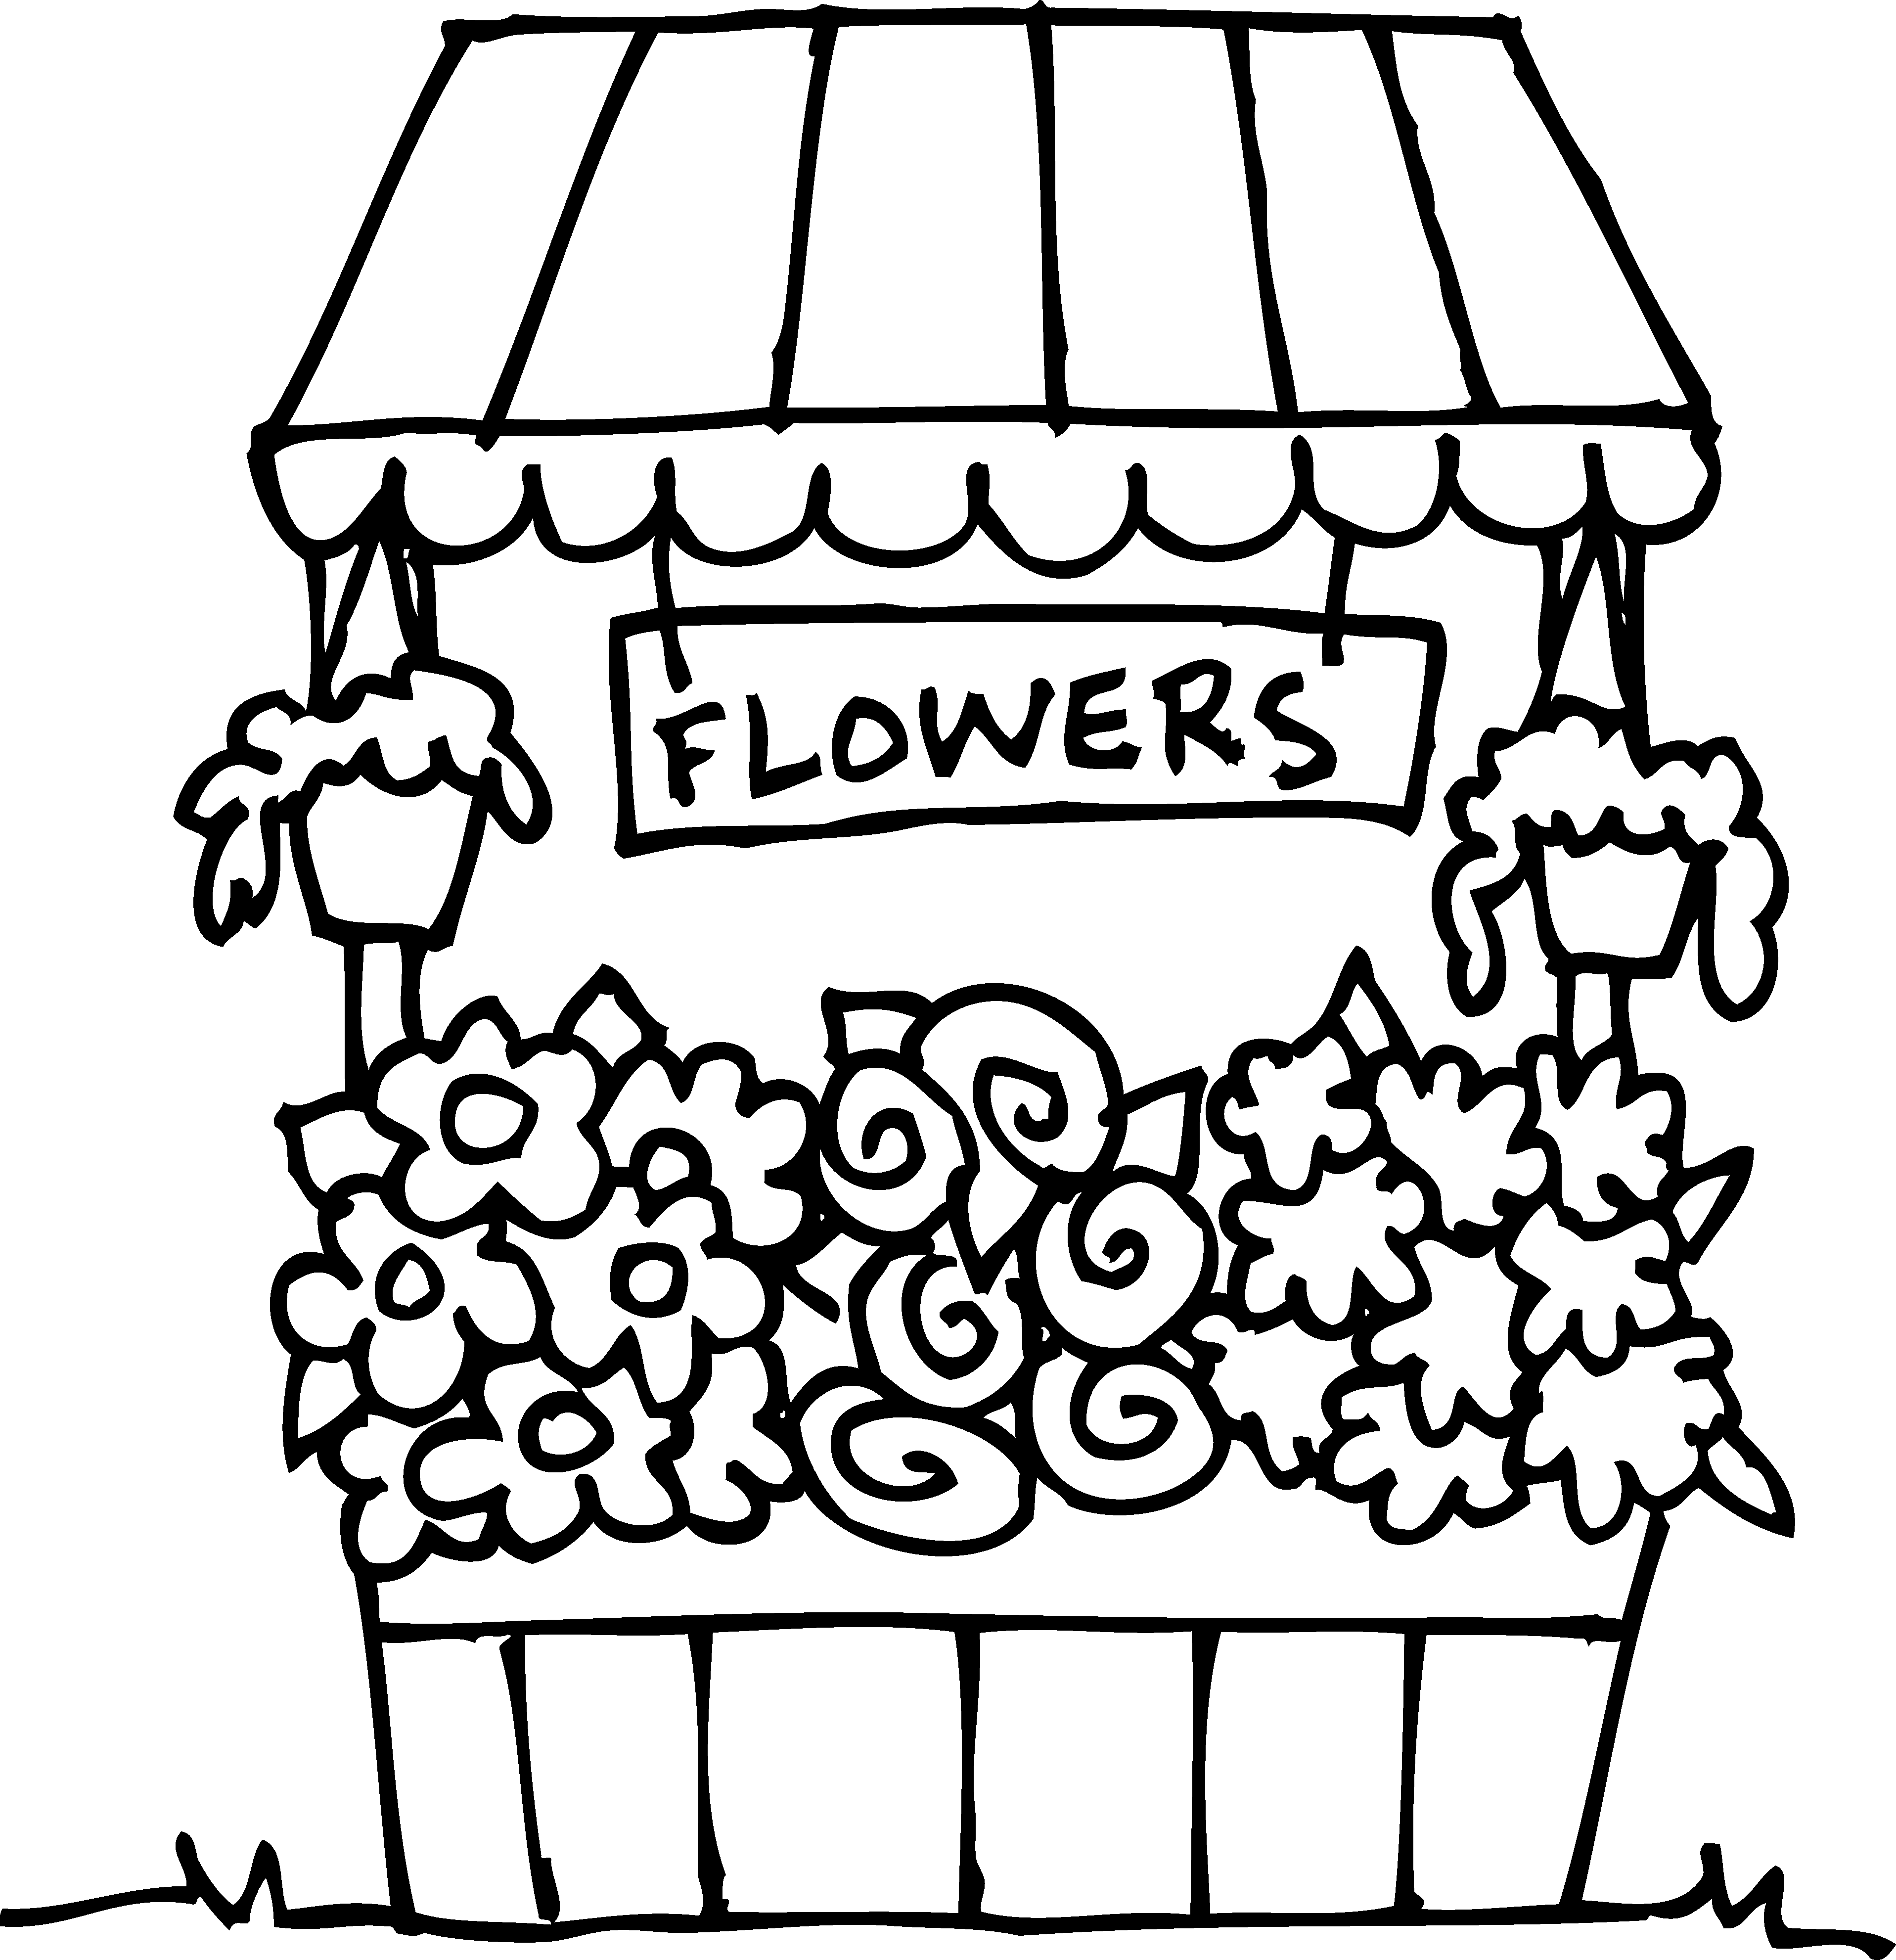 Cute flower clipart black and white image black and white download Coloring book Floristry Flower Floral design Clip art - Flower Shop ... image black and white download